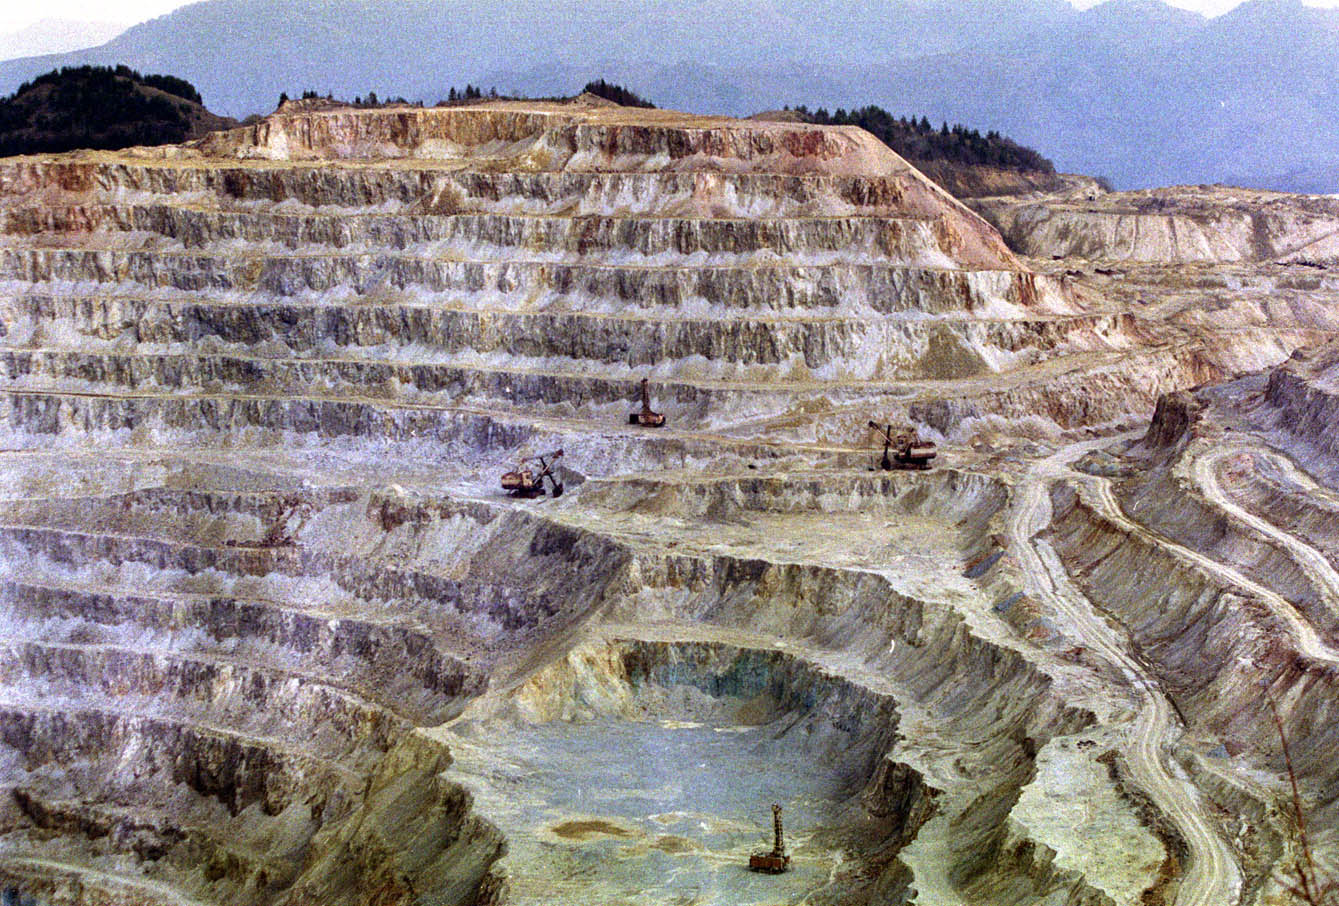 European Minerals Day, celebrated in Rosia Montana